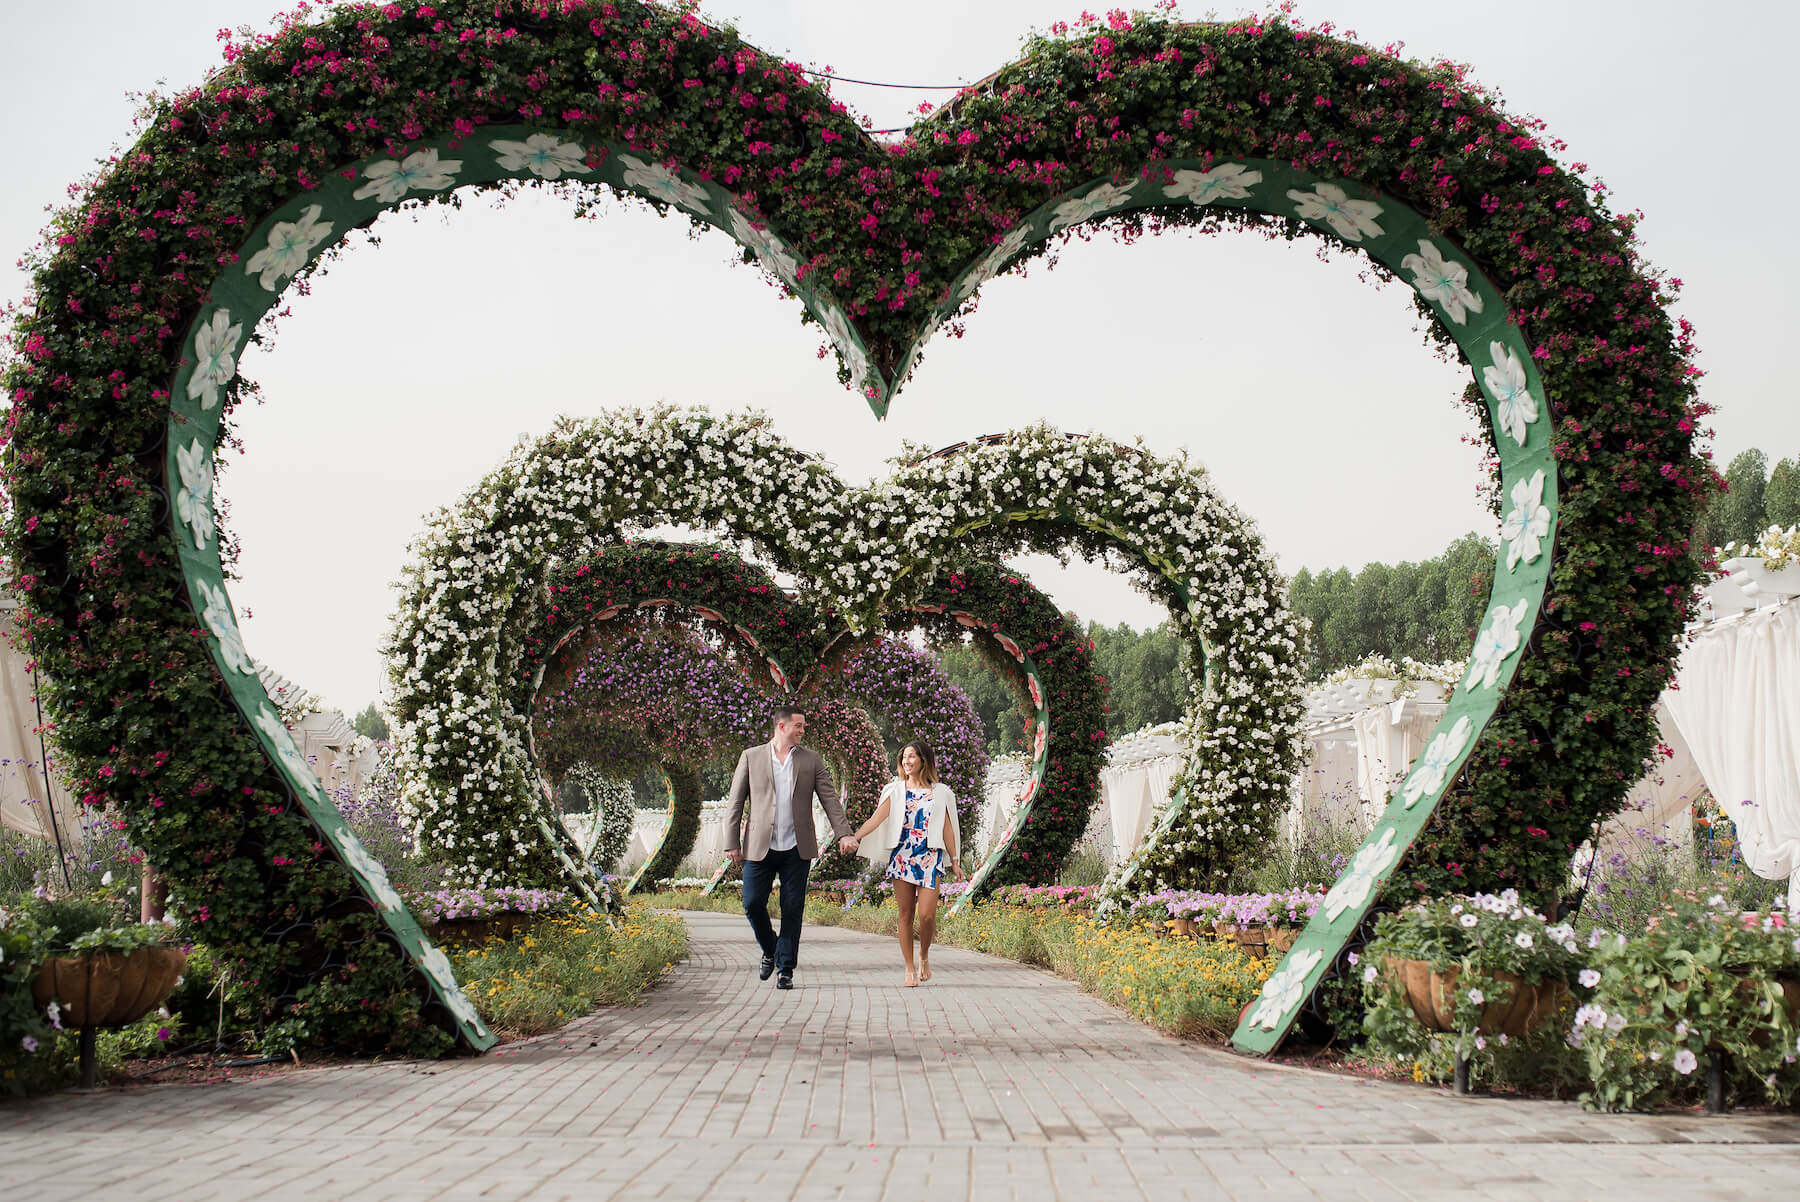 Couple holding hands and walking through heart-shaped floral archways in the Dubai Miracle Garden